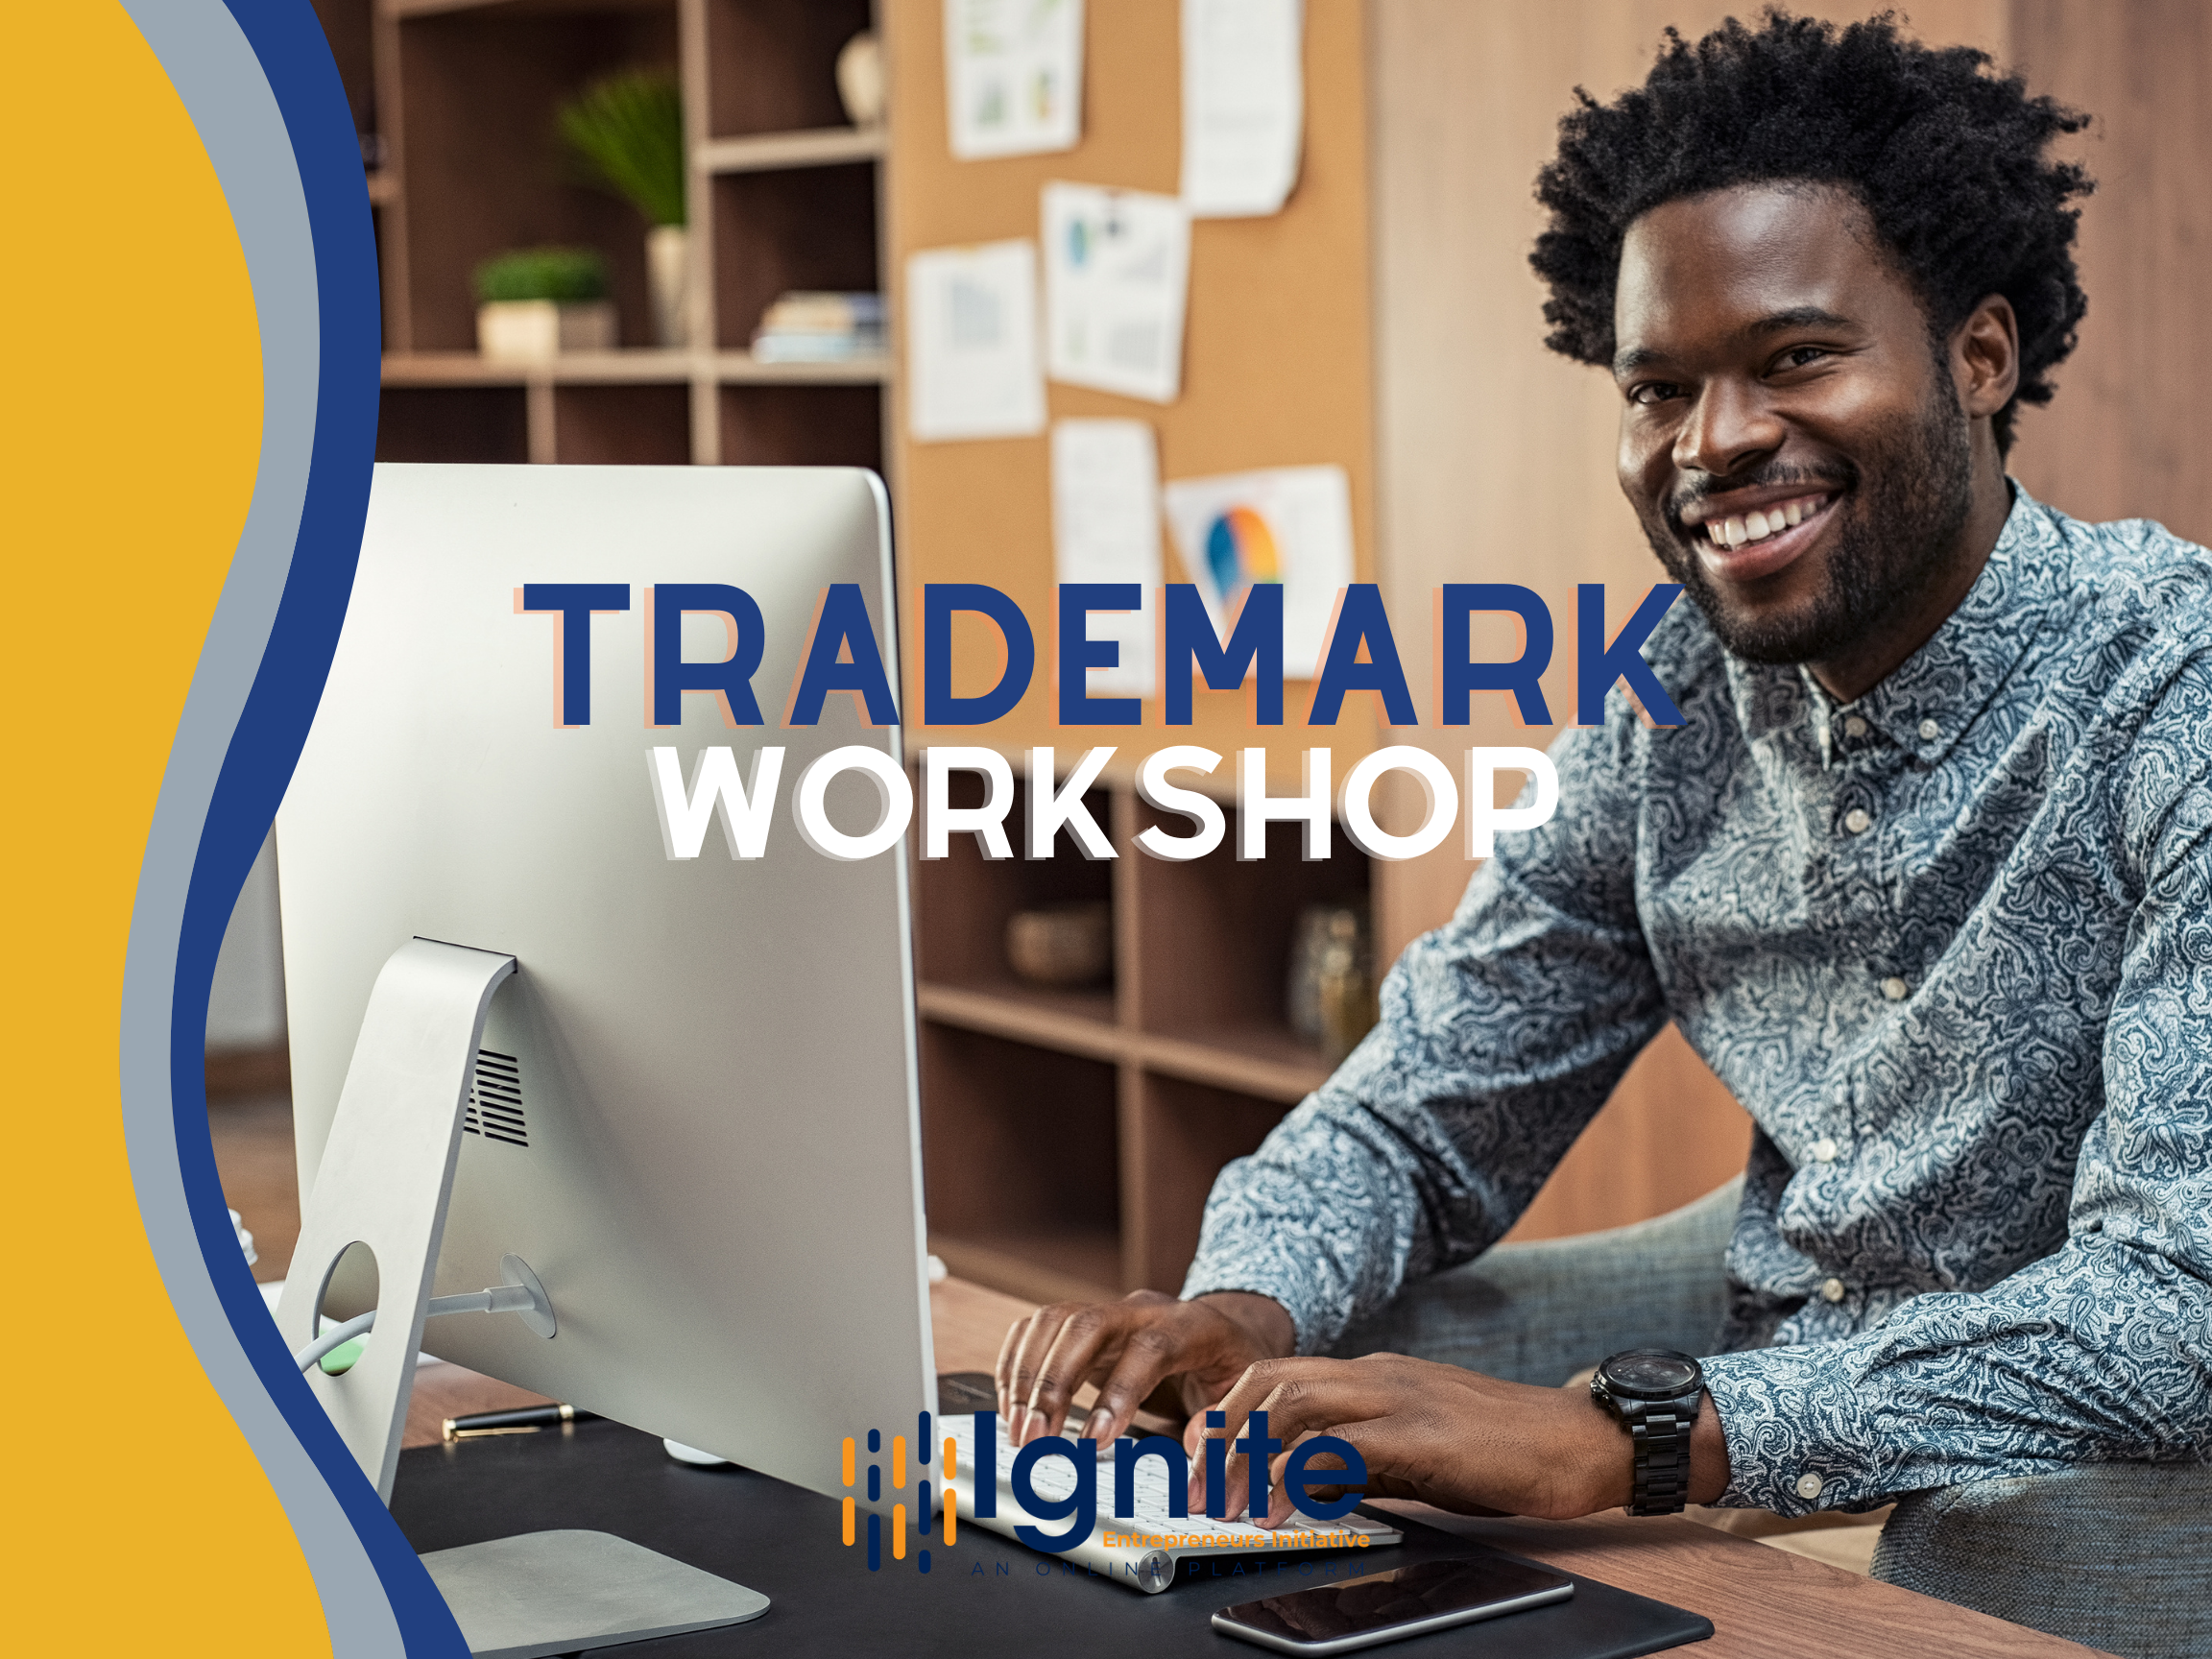 Chicago coworking webinar on trademarks